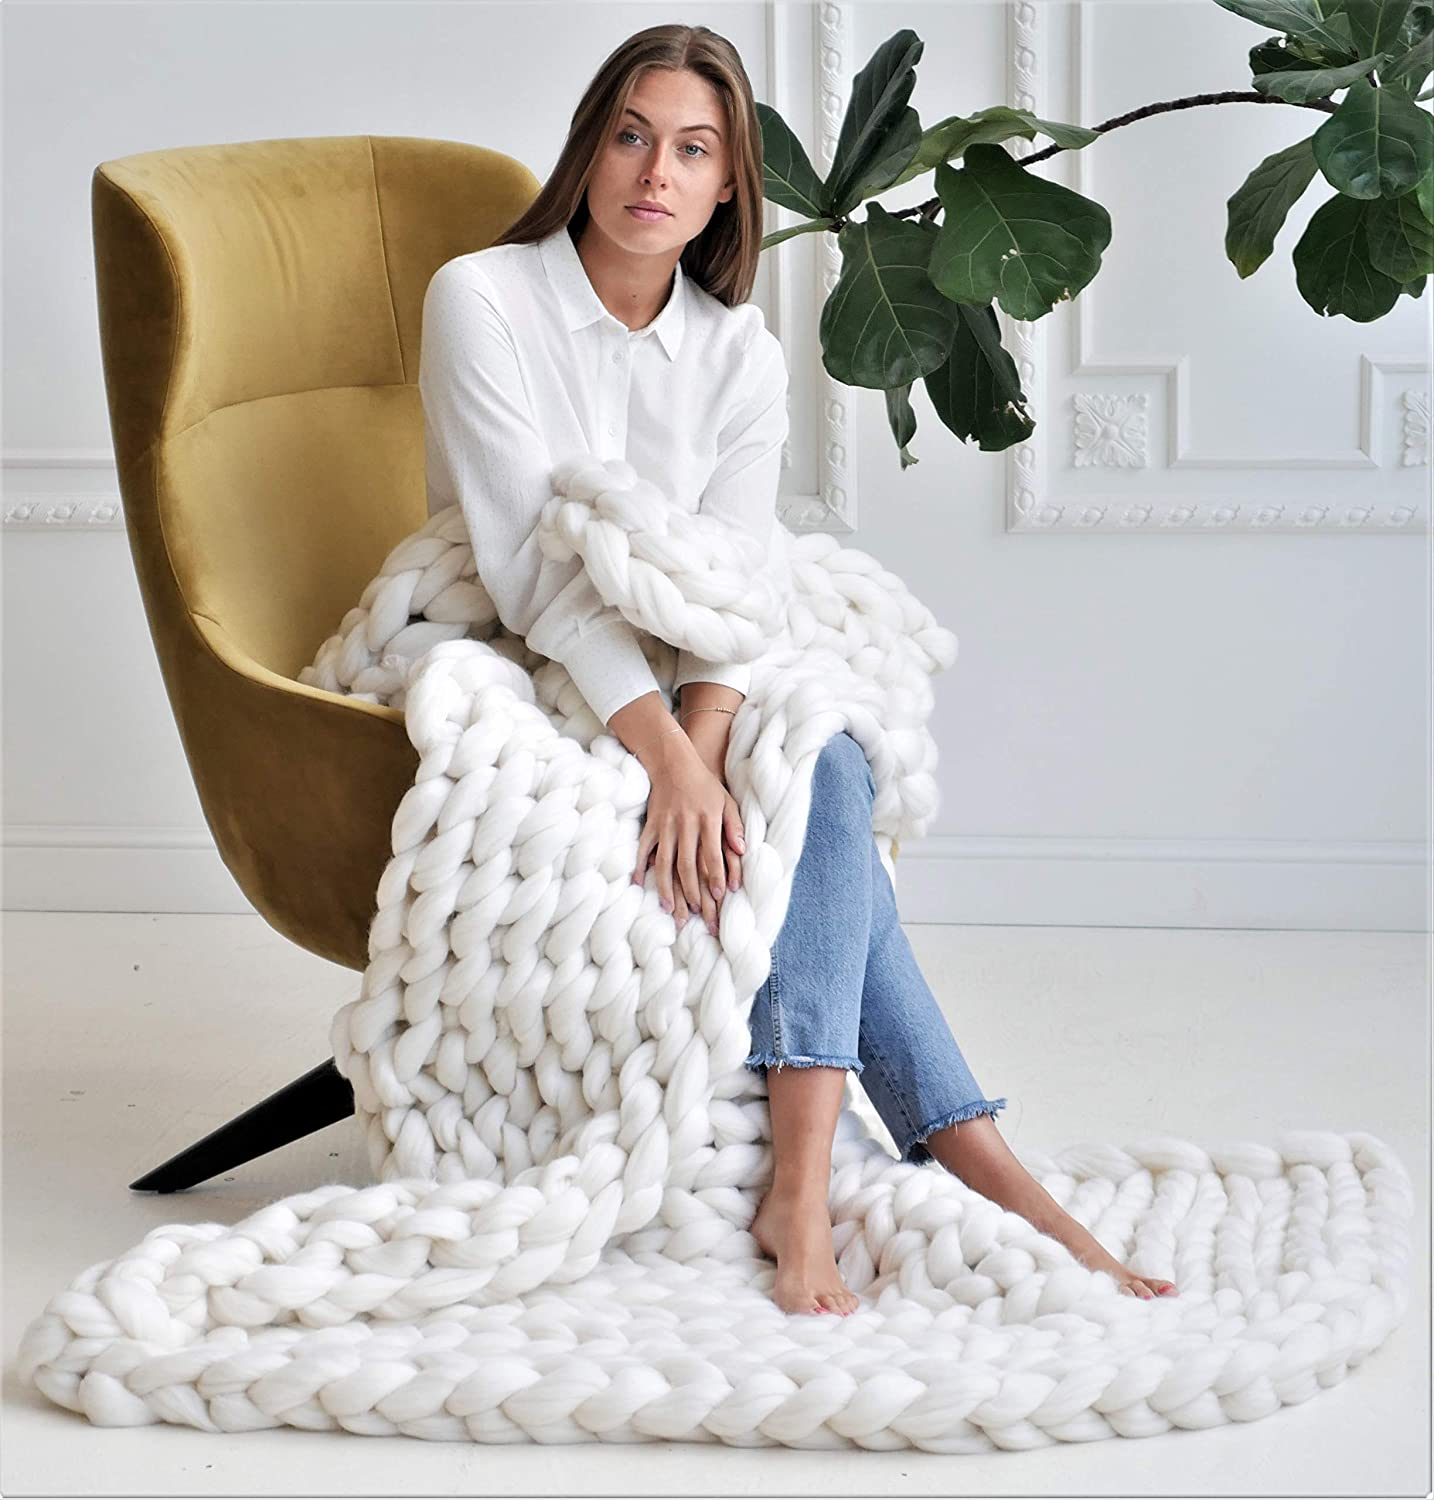 Image of Chunky blanket - Merino blanket - Cheap blanket - Merino throw - Chunky throw - Quilt - Optimal size 40x60' - order from wholesalers - pure merino wool - arm knitting - Giant throw